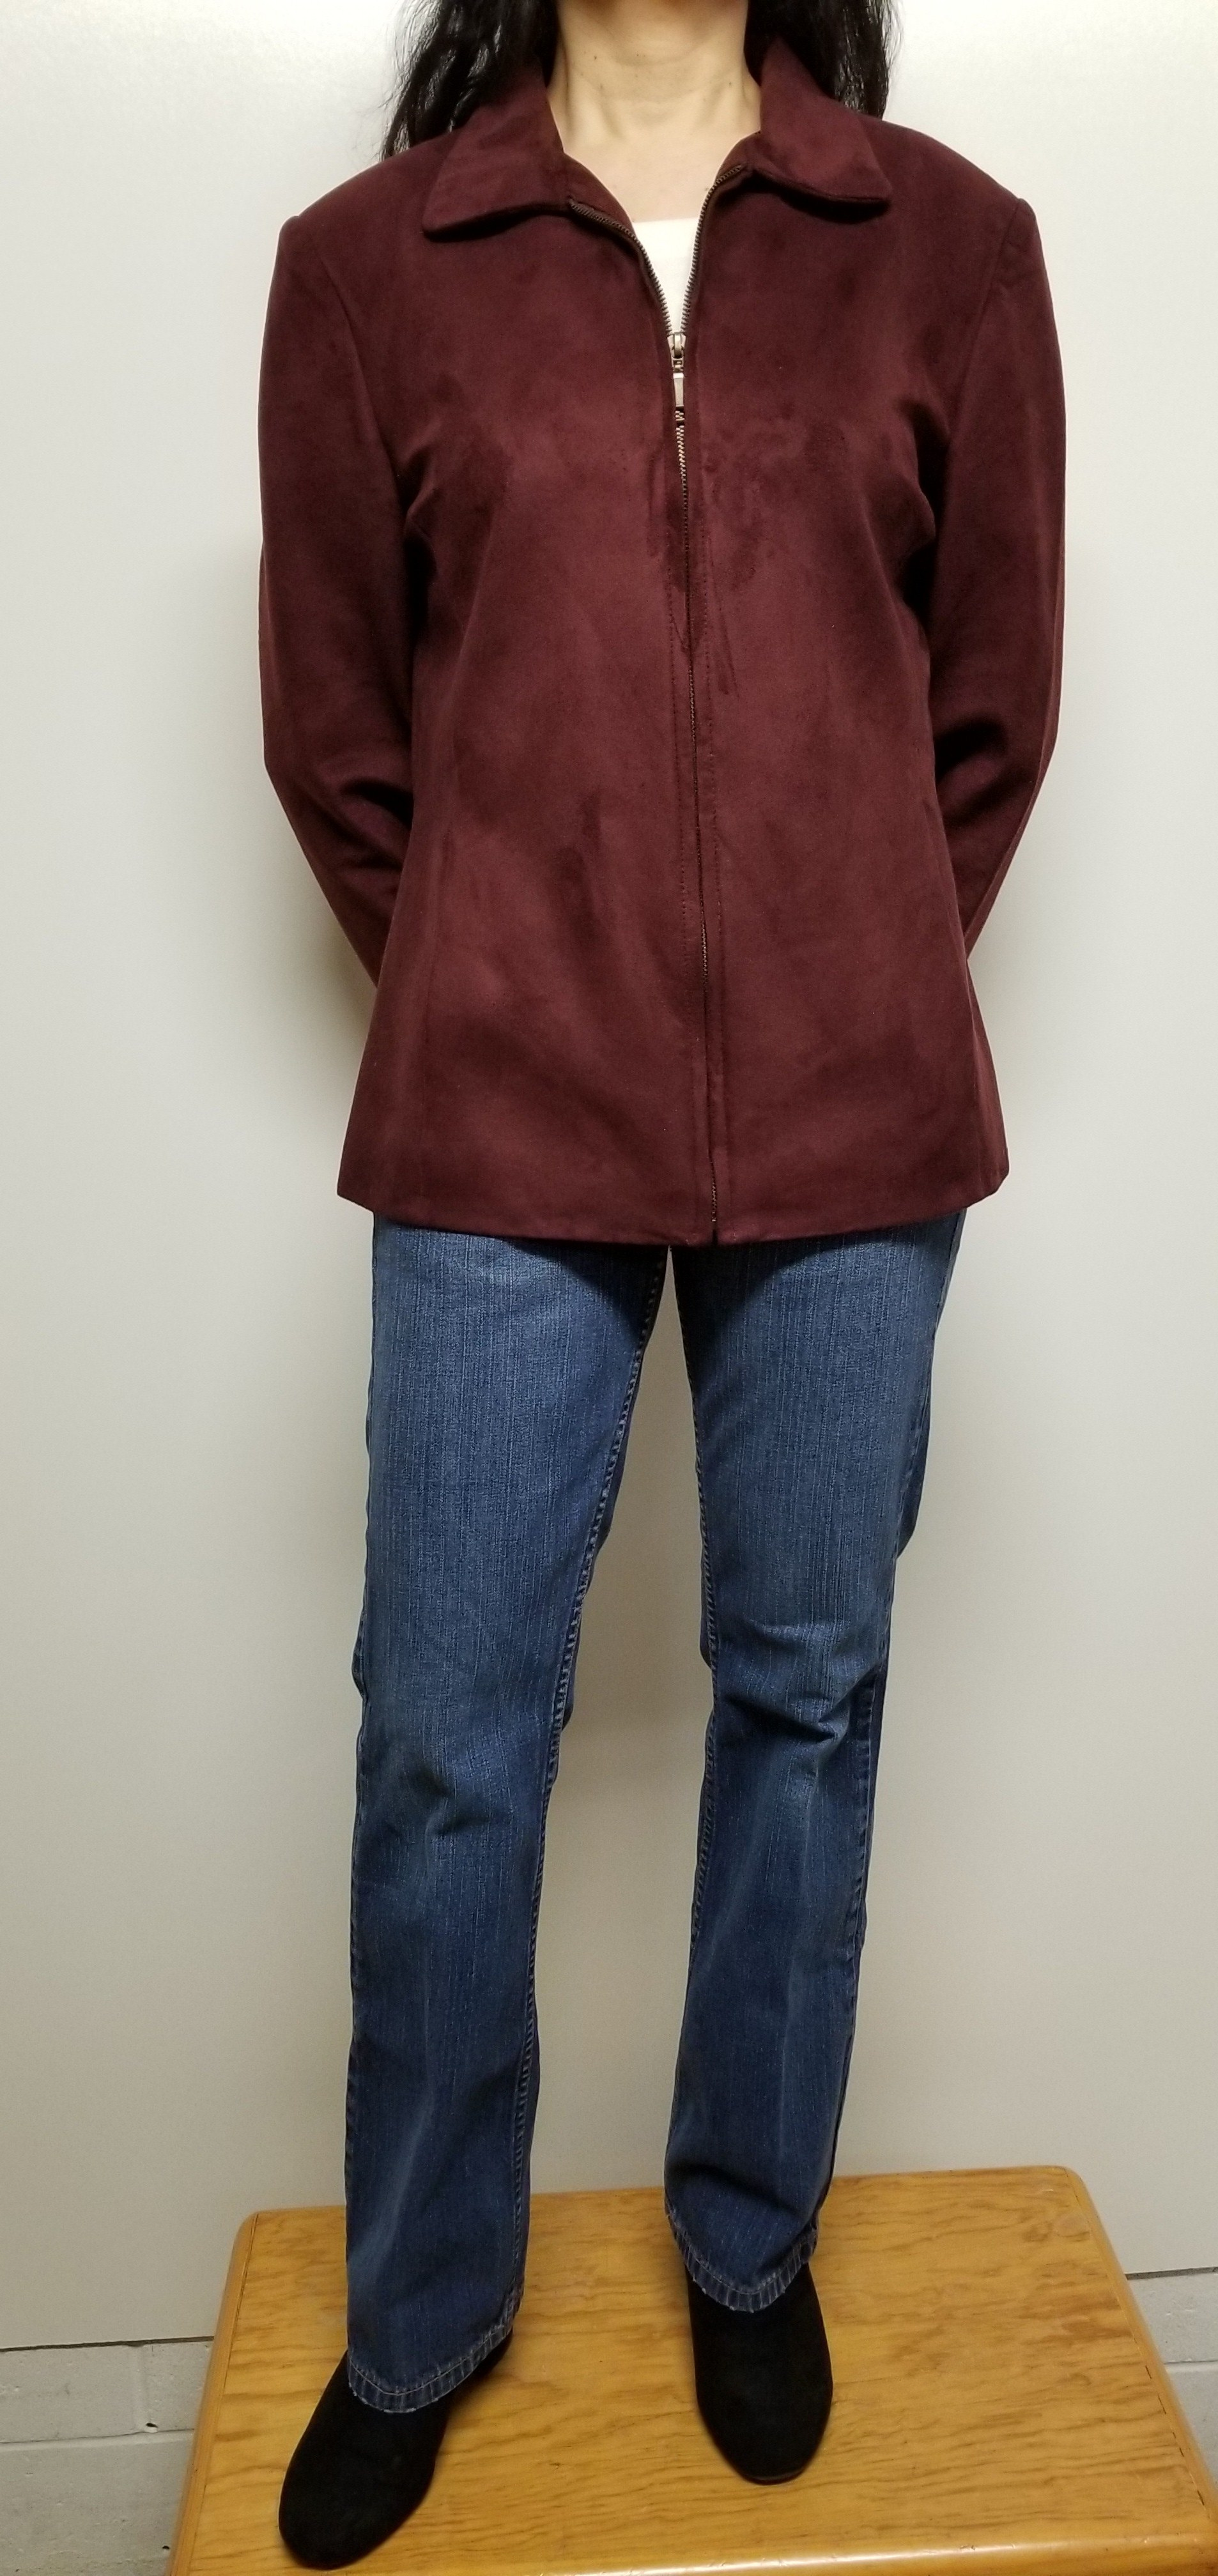 Women Fall Jacket Faux Suede Zip Front Color Burgundy